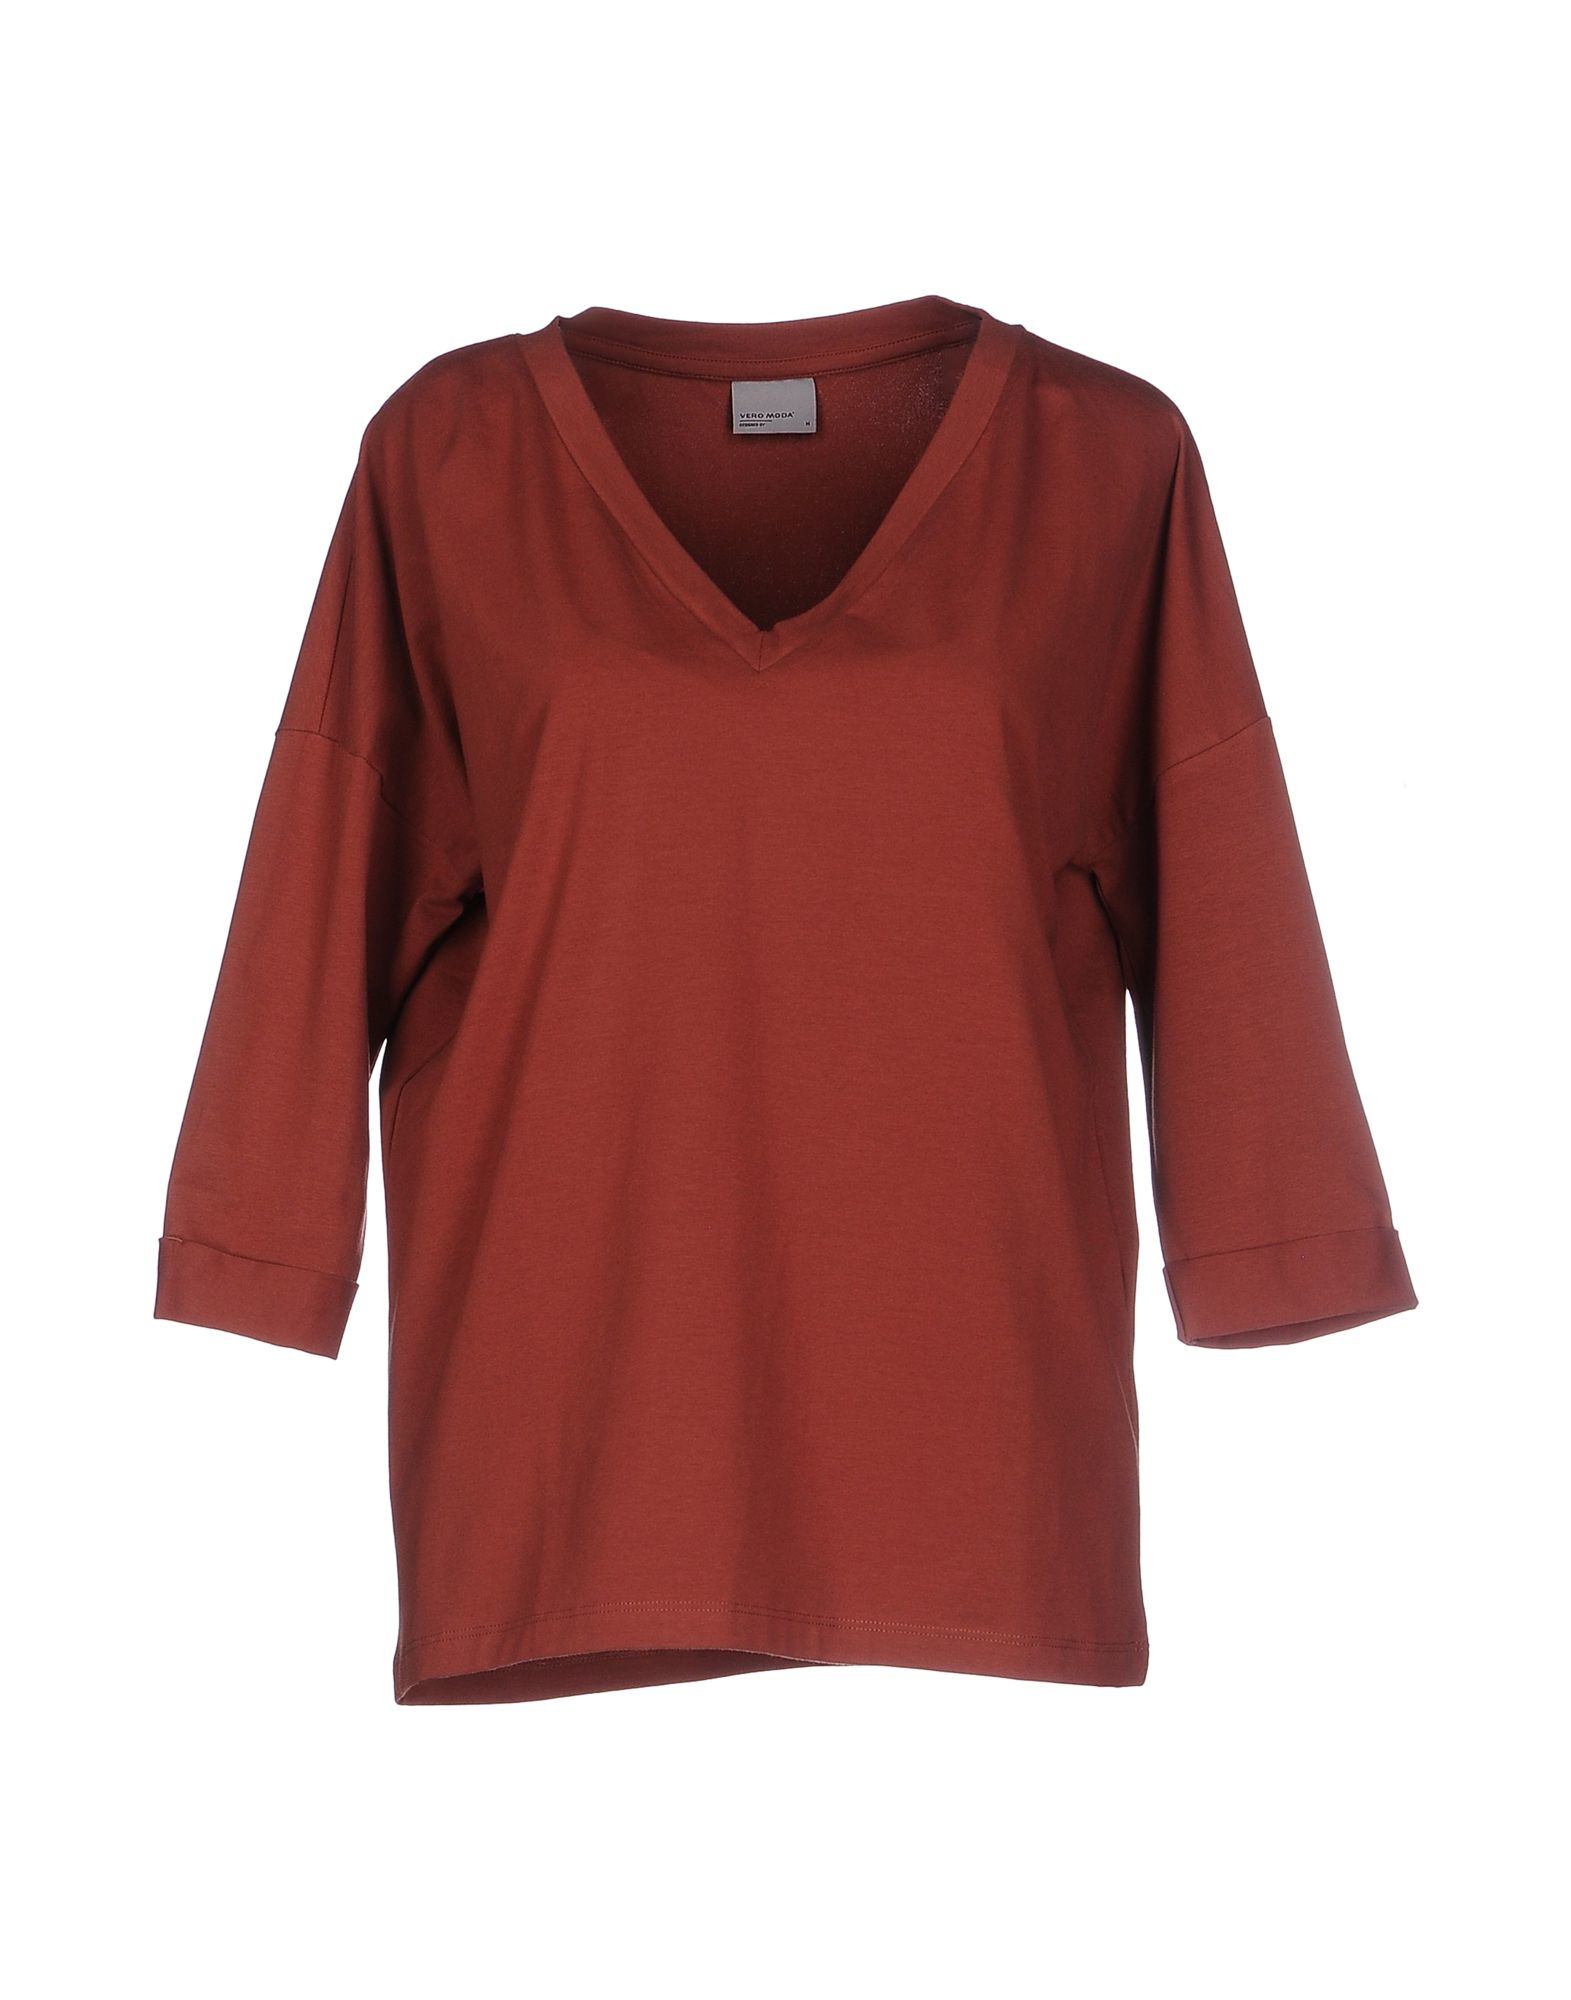 vero moda t shirt in red lyst. Black Bedroom Furniture Sets. Home Design Ideas